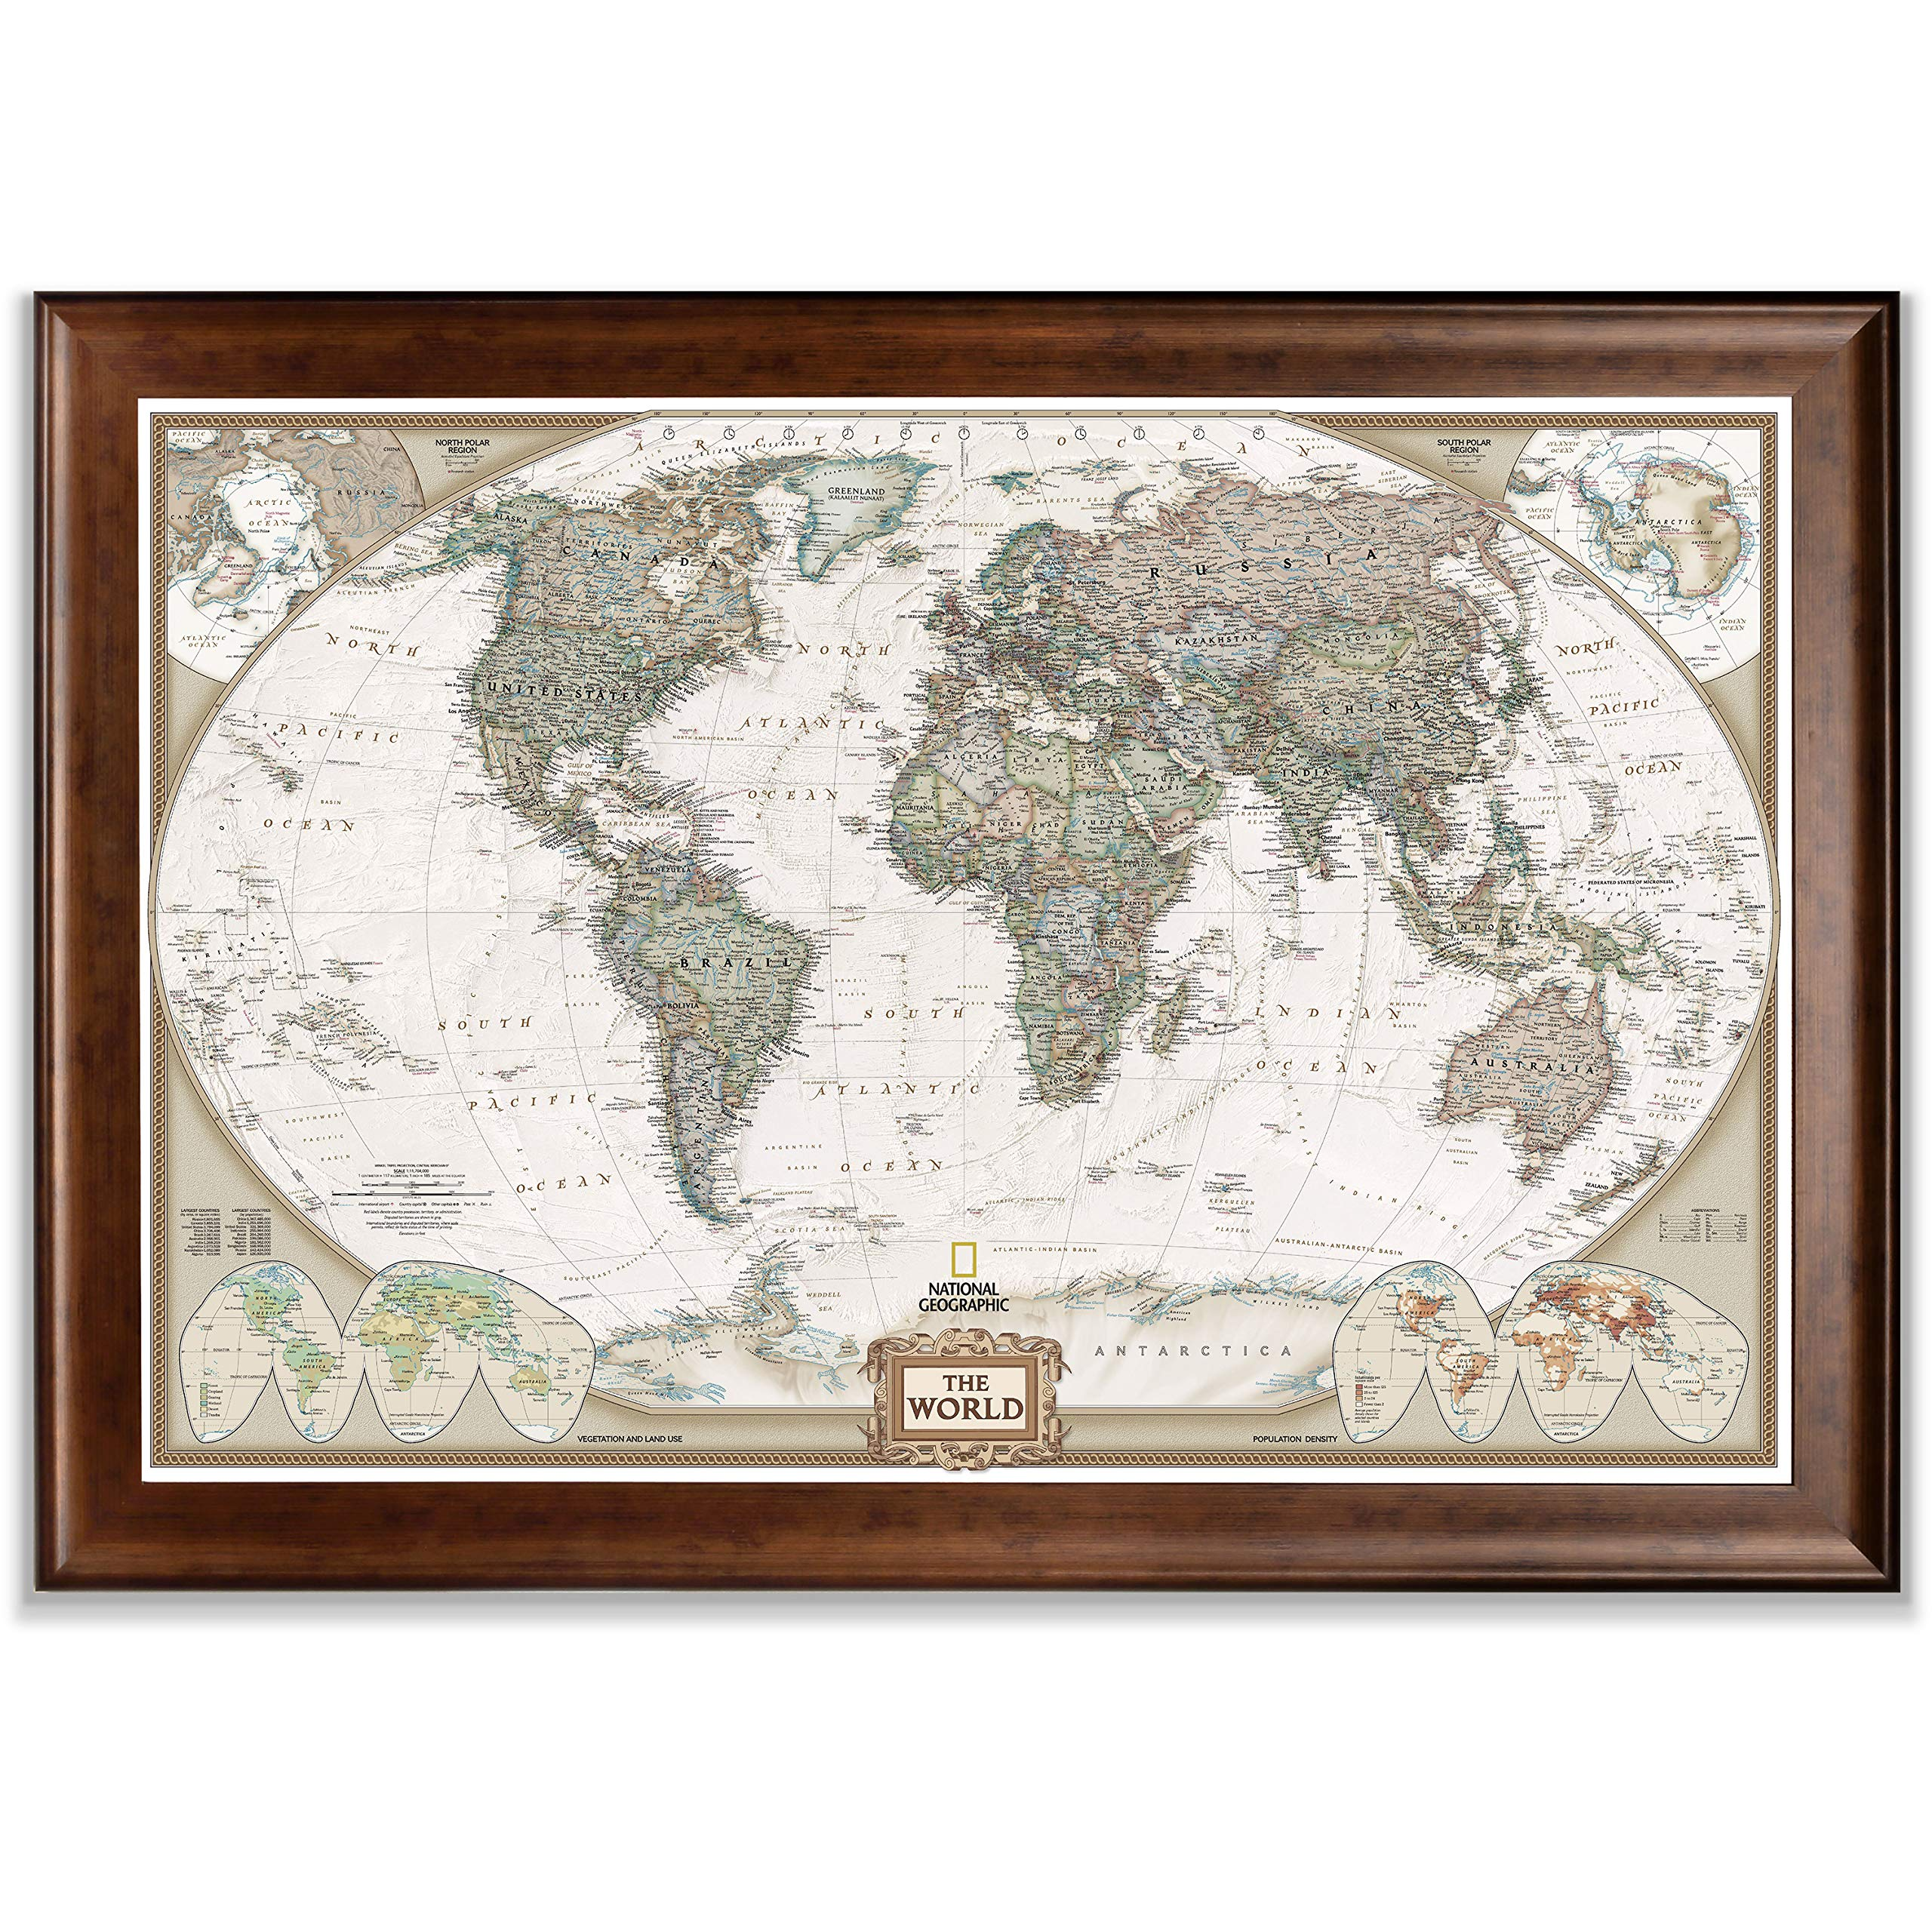 Renditions Gallery Frame Executive National Geographic World Travel Map with Push Pins, Wall Art for Living Room, Bedroom, Office, Dark Walnut, 28x40, by Renditions Gallery